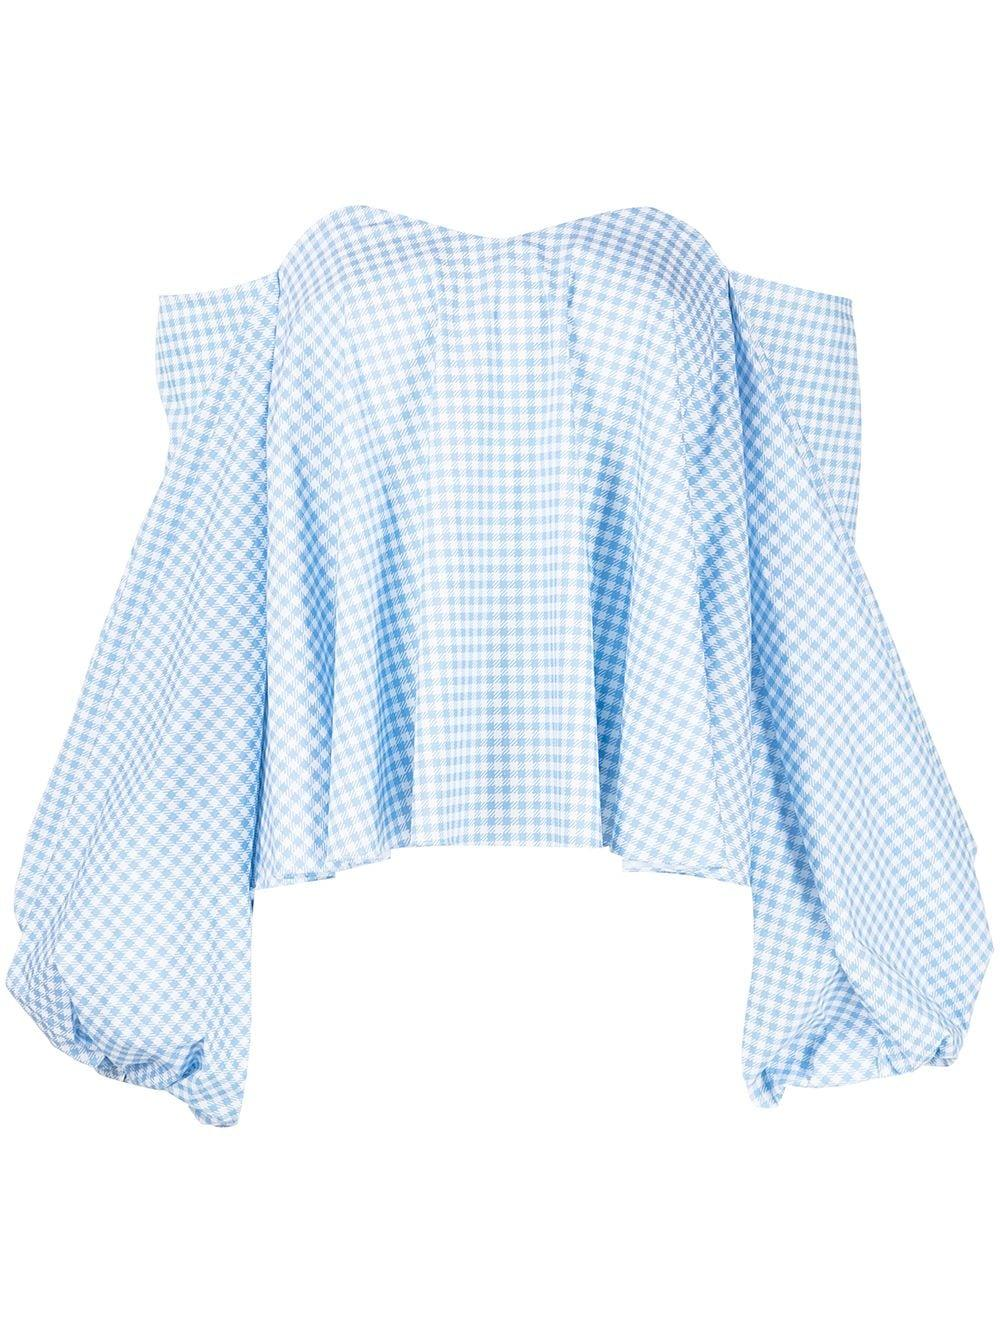 Everly Gingham Top Item # T438GPSS21